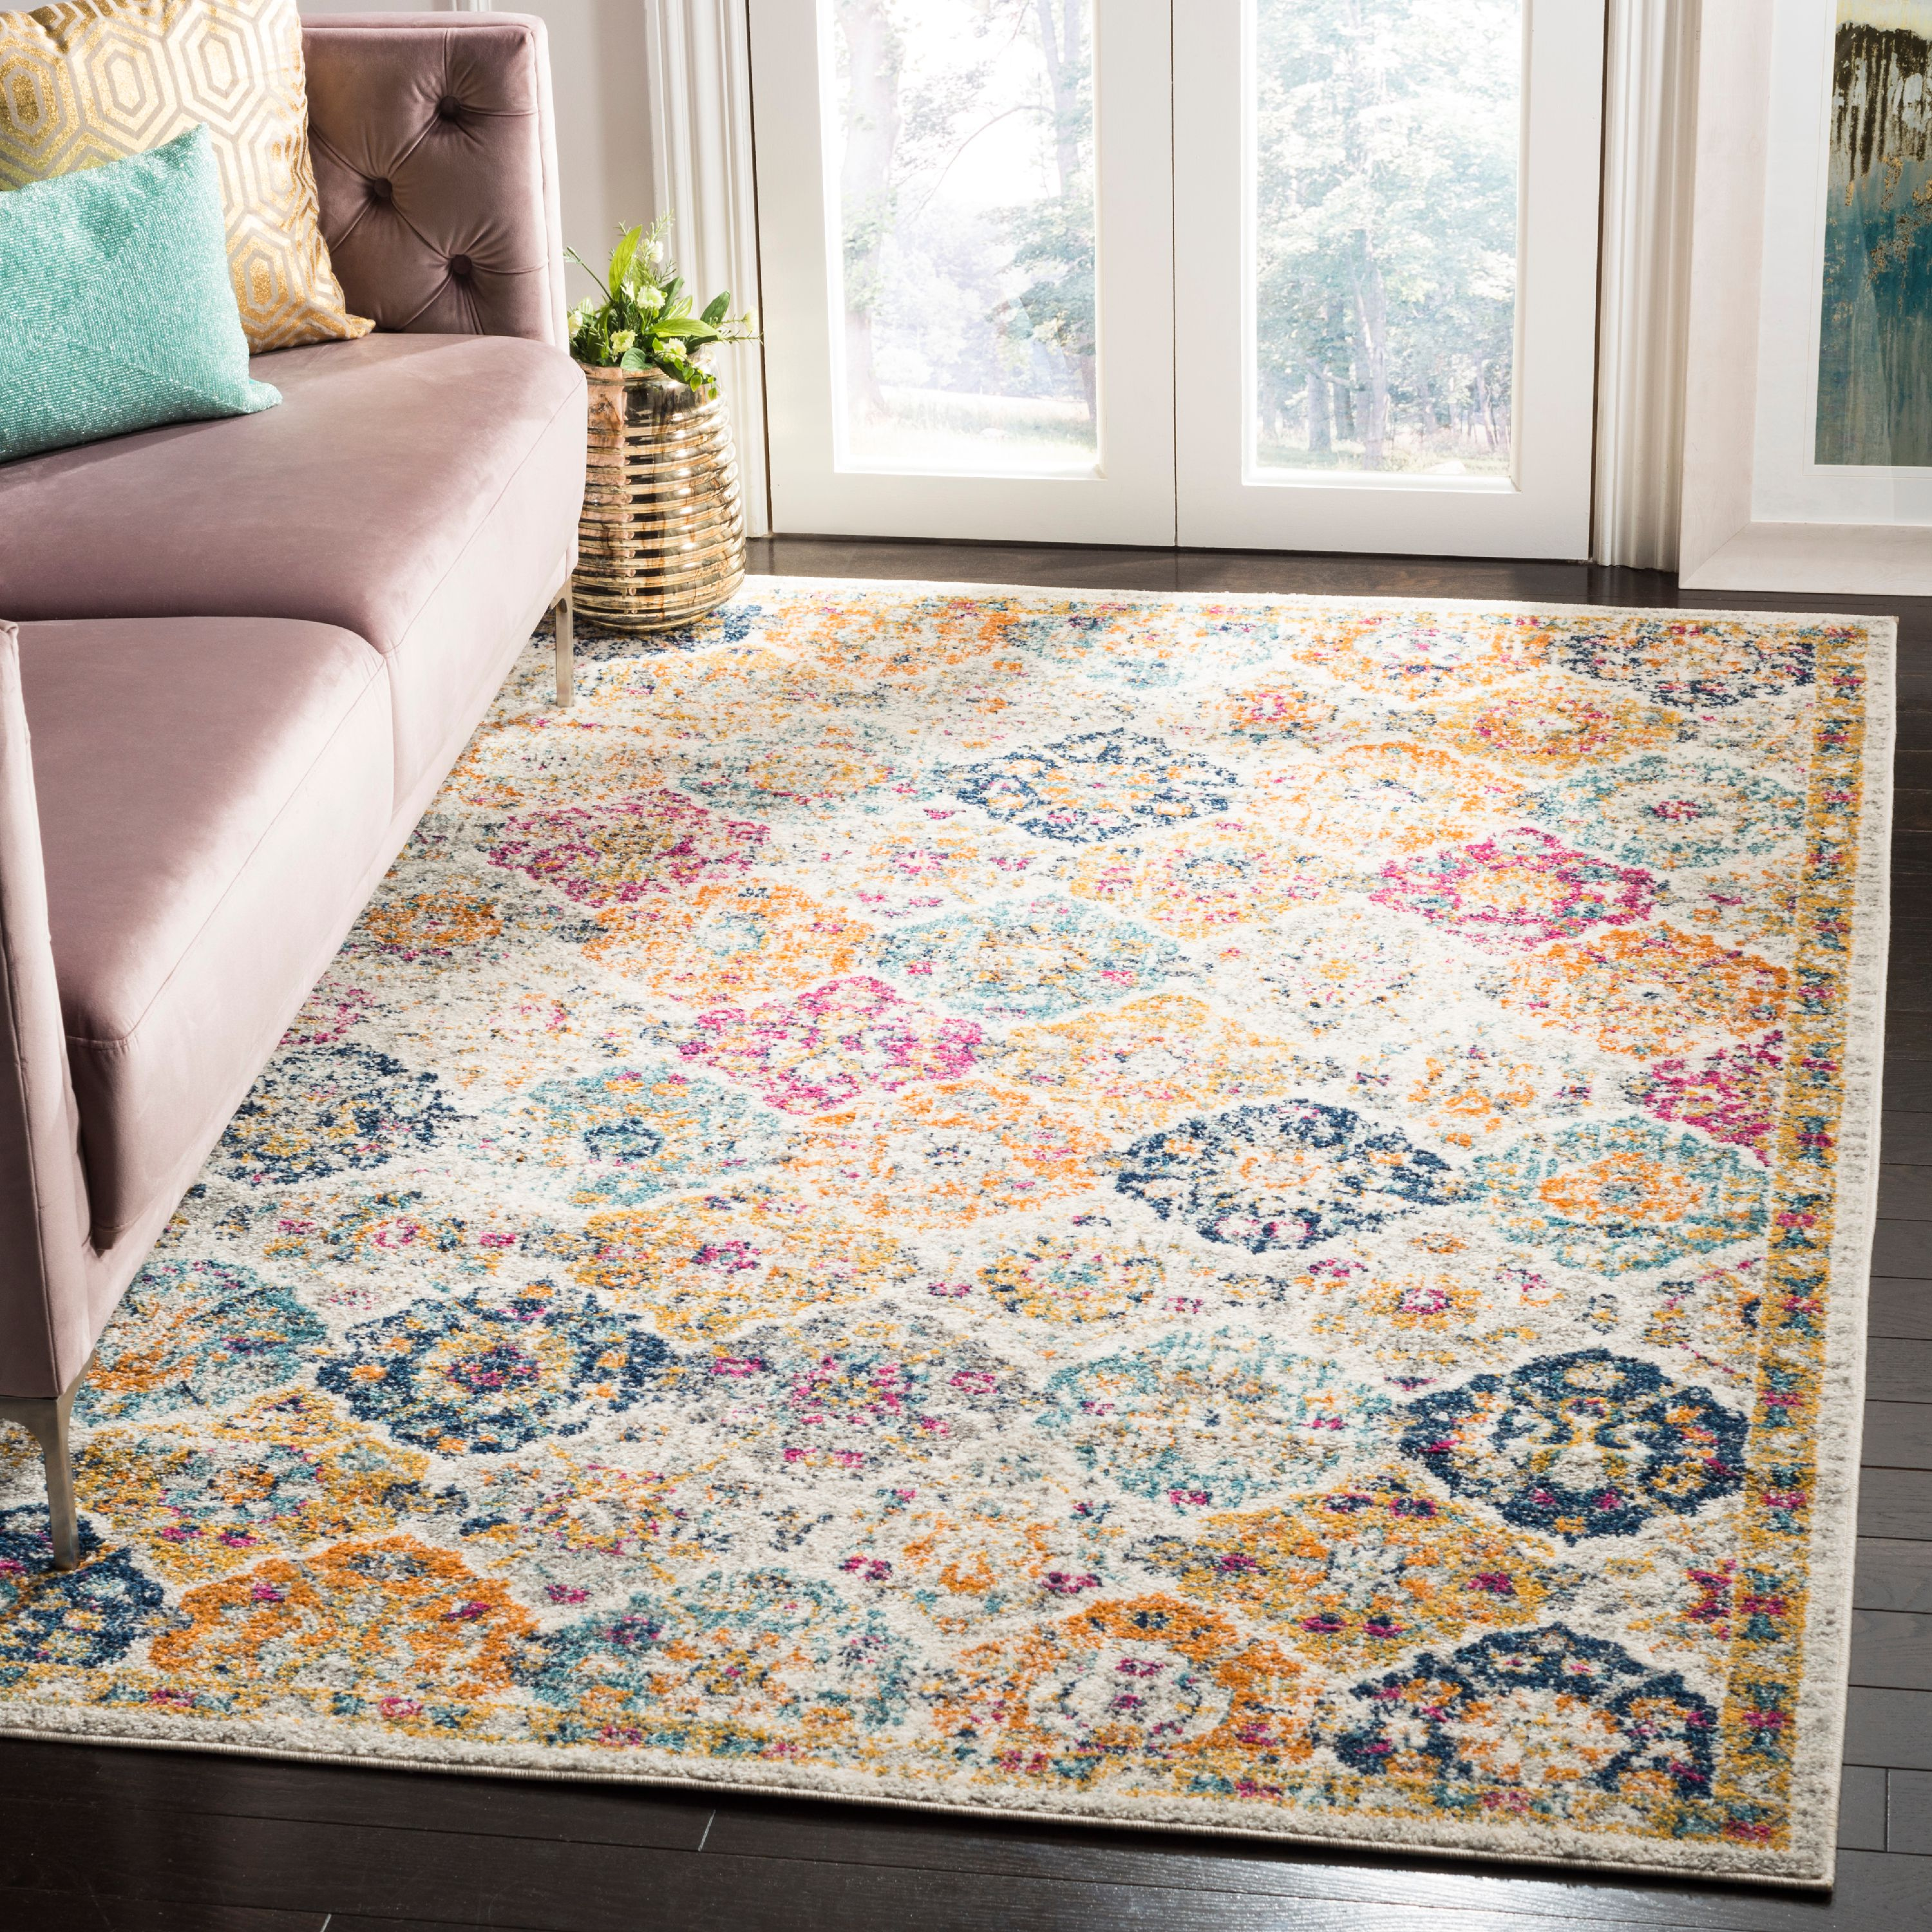 Safavieh Madison Judith Geometric Floral Area Rug or Runner by Safavieh